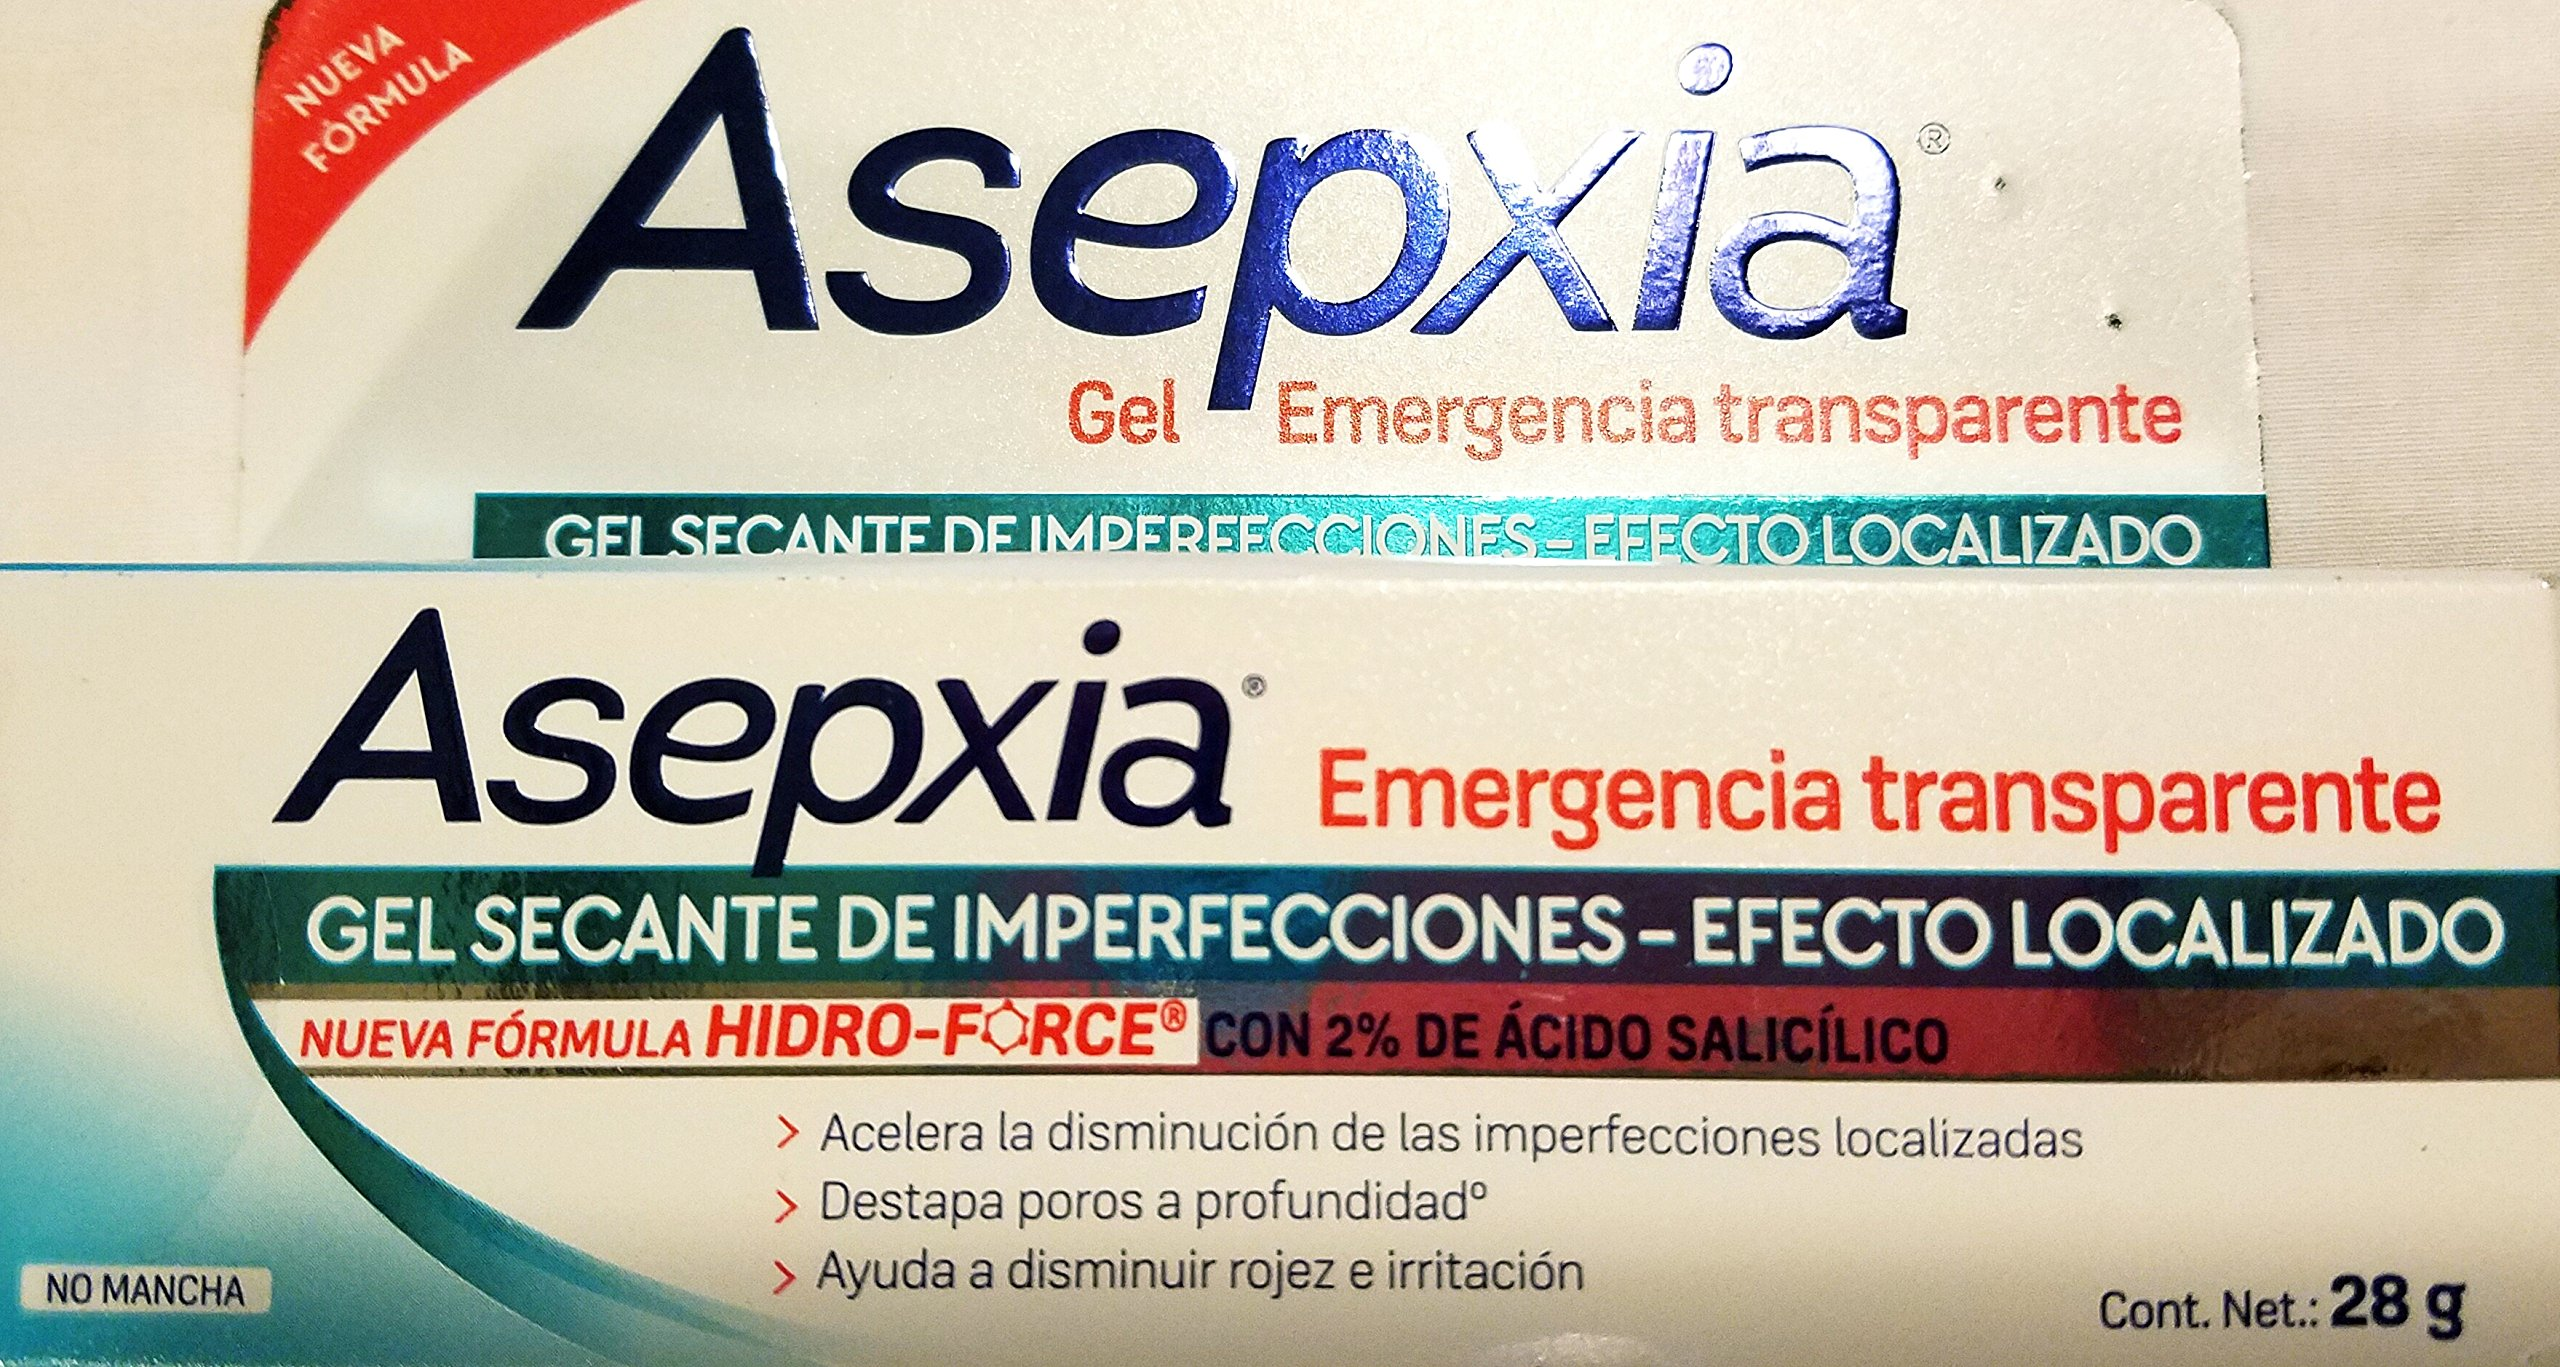 Amazon.com : Asepxia Clear Gel Emergency 24 Hrs Aniacnil Fp for Zit & Acne 28g New : Facial Astringents : Beauty